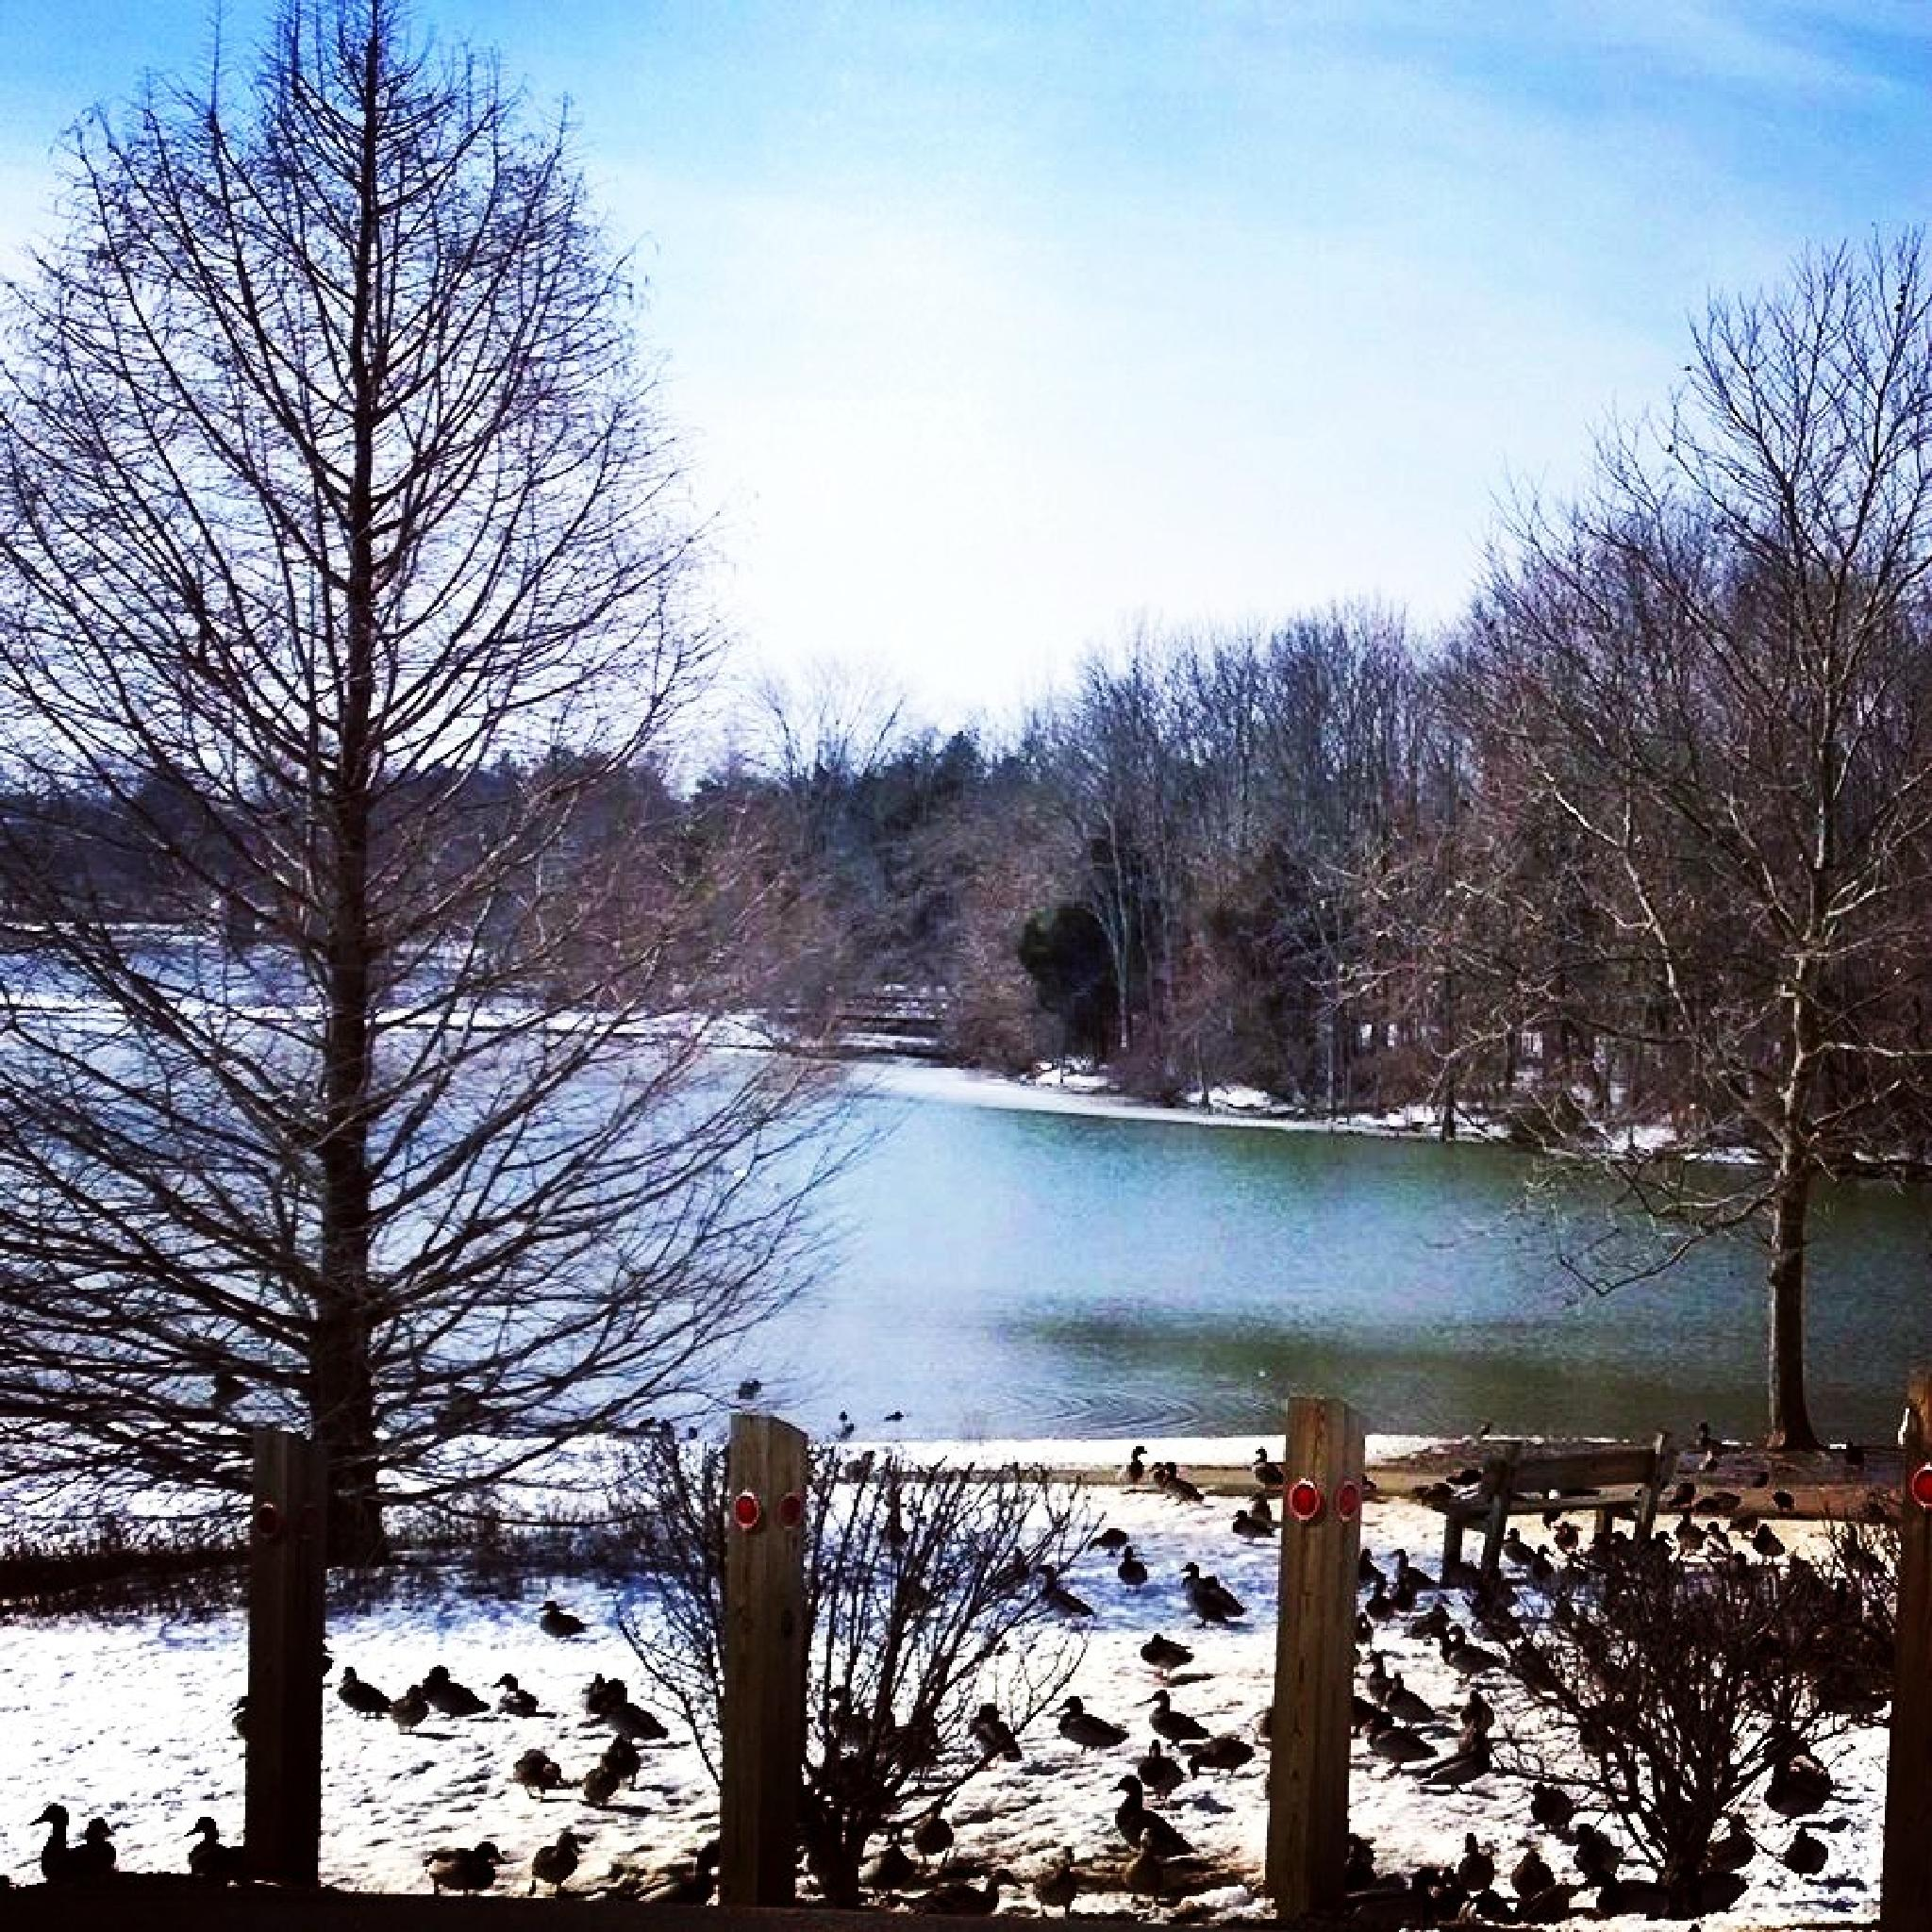 Ducks by the Winter lake by marie.short.18